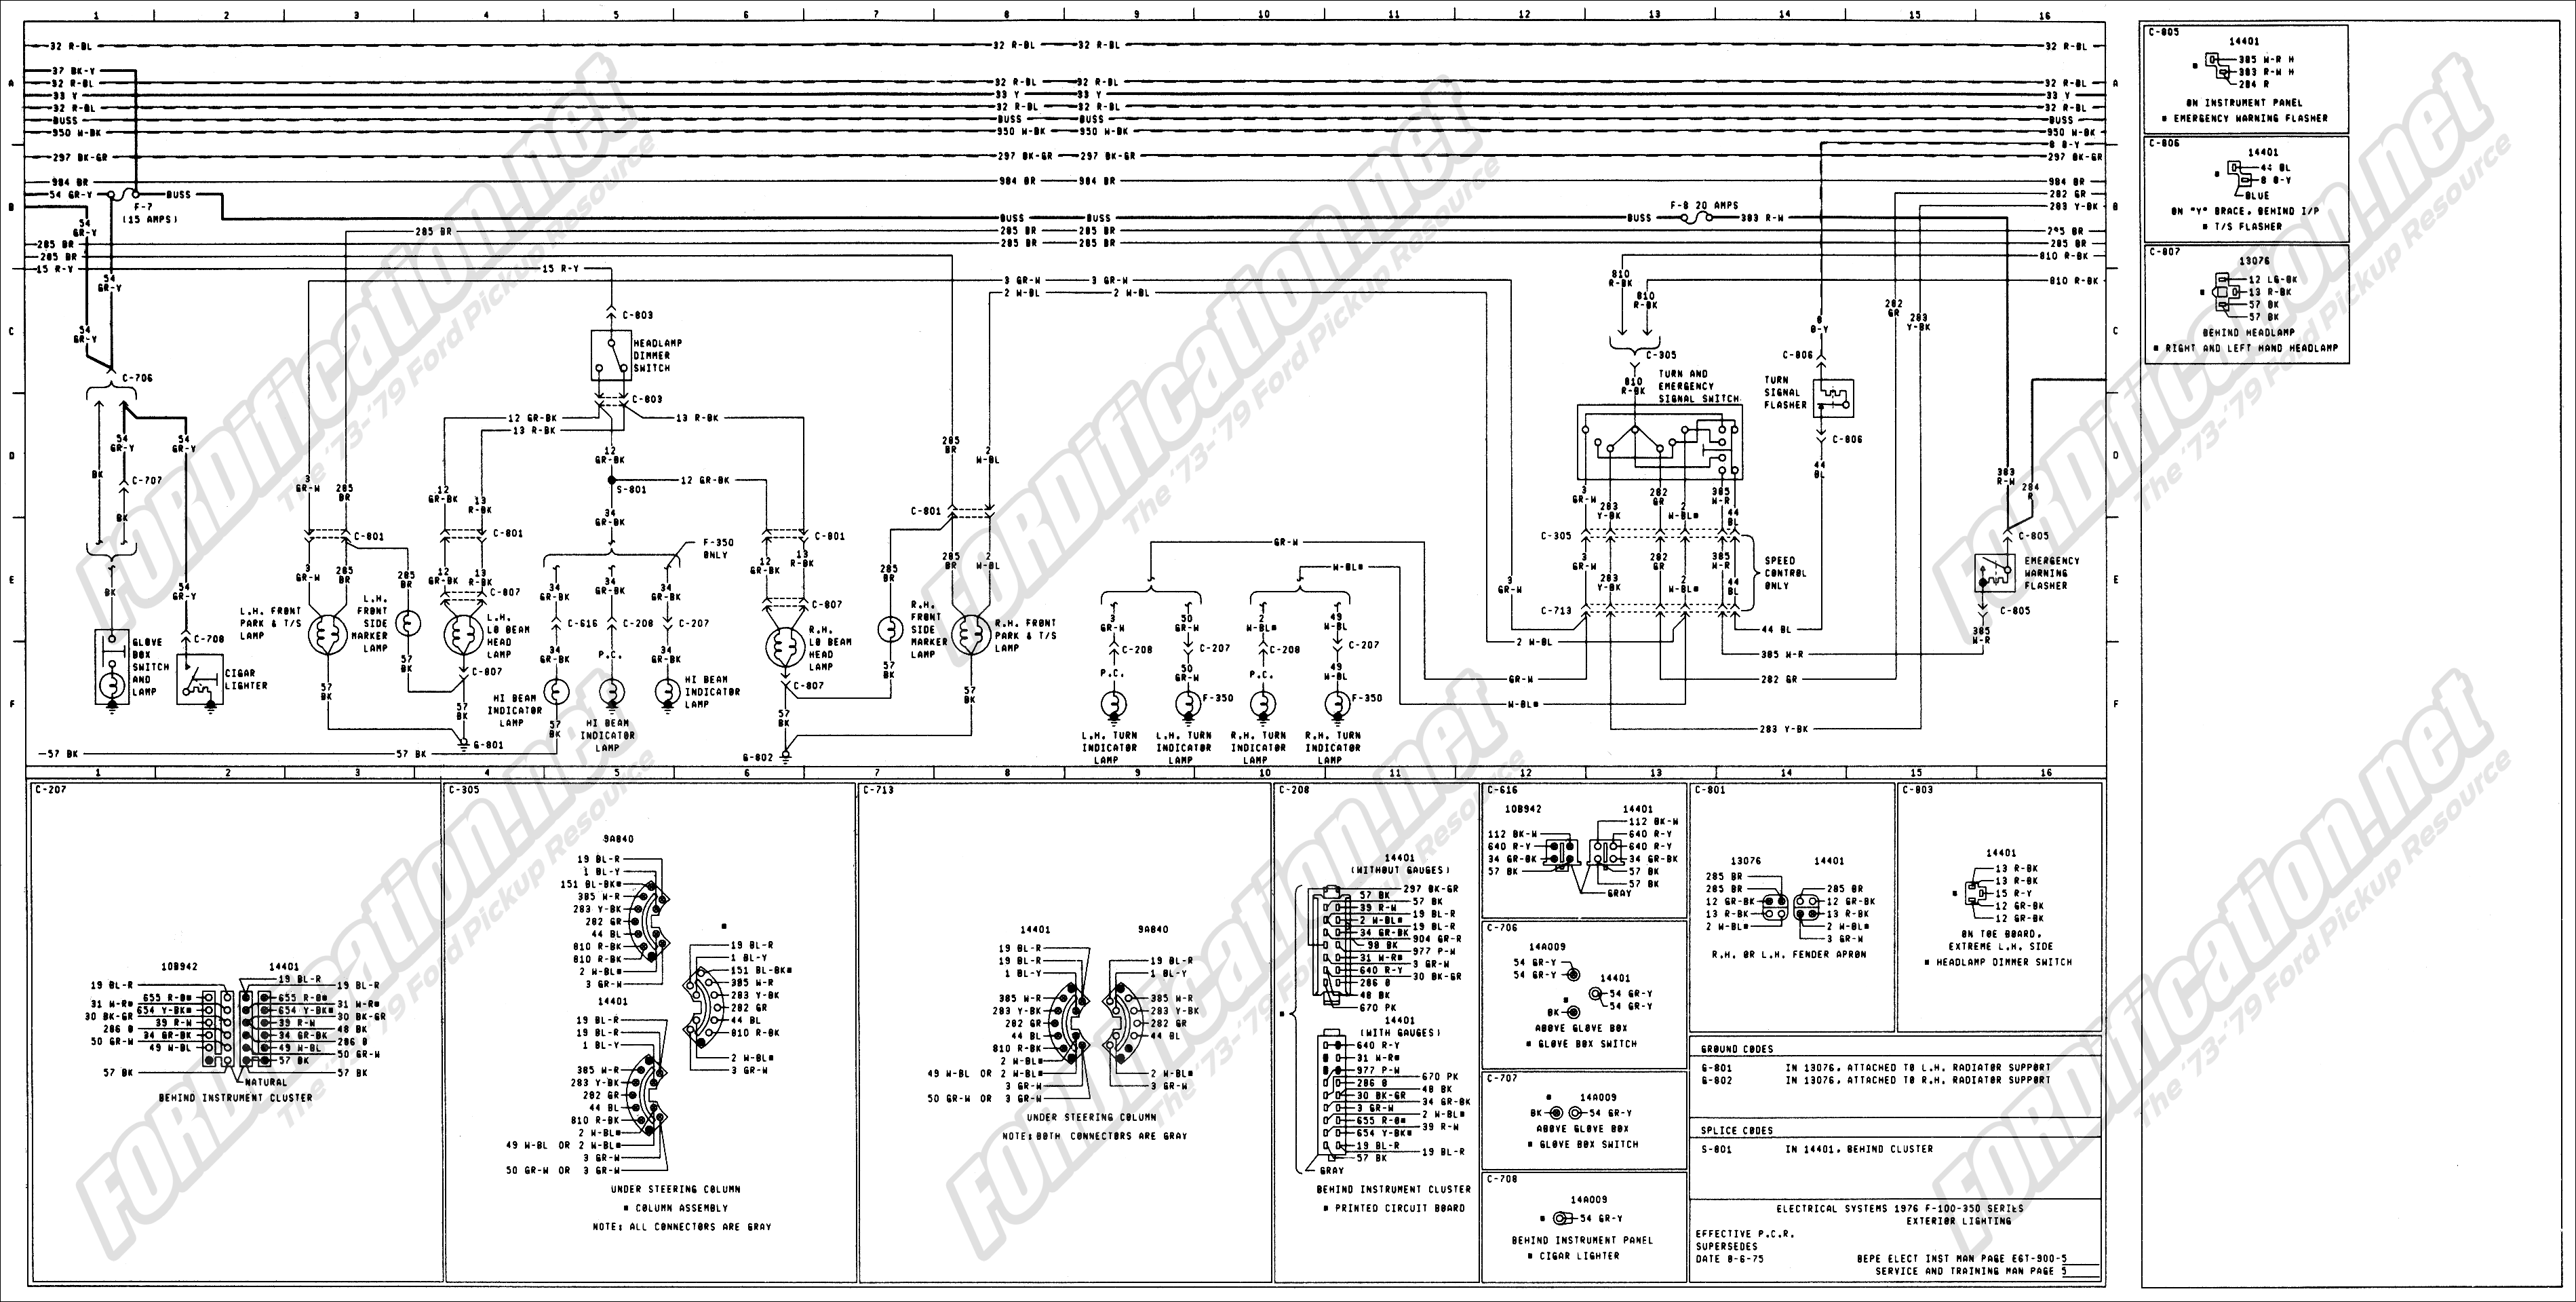 F250 Wiring Diagram Detailed Receptacle Free Download Schematic 76 Ford 7 Pin Trailer Plug